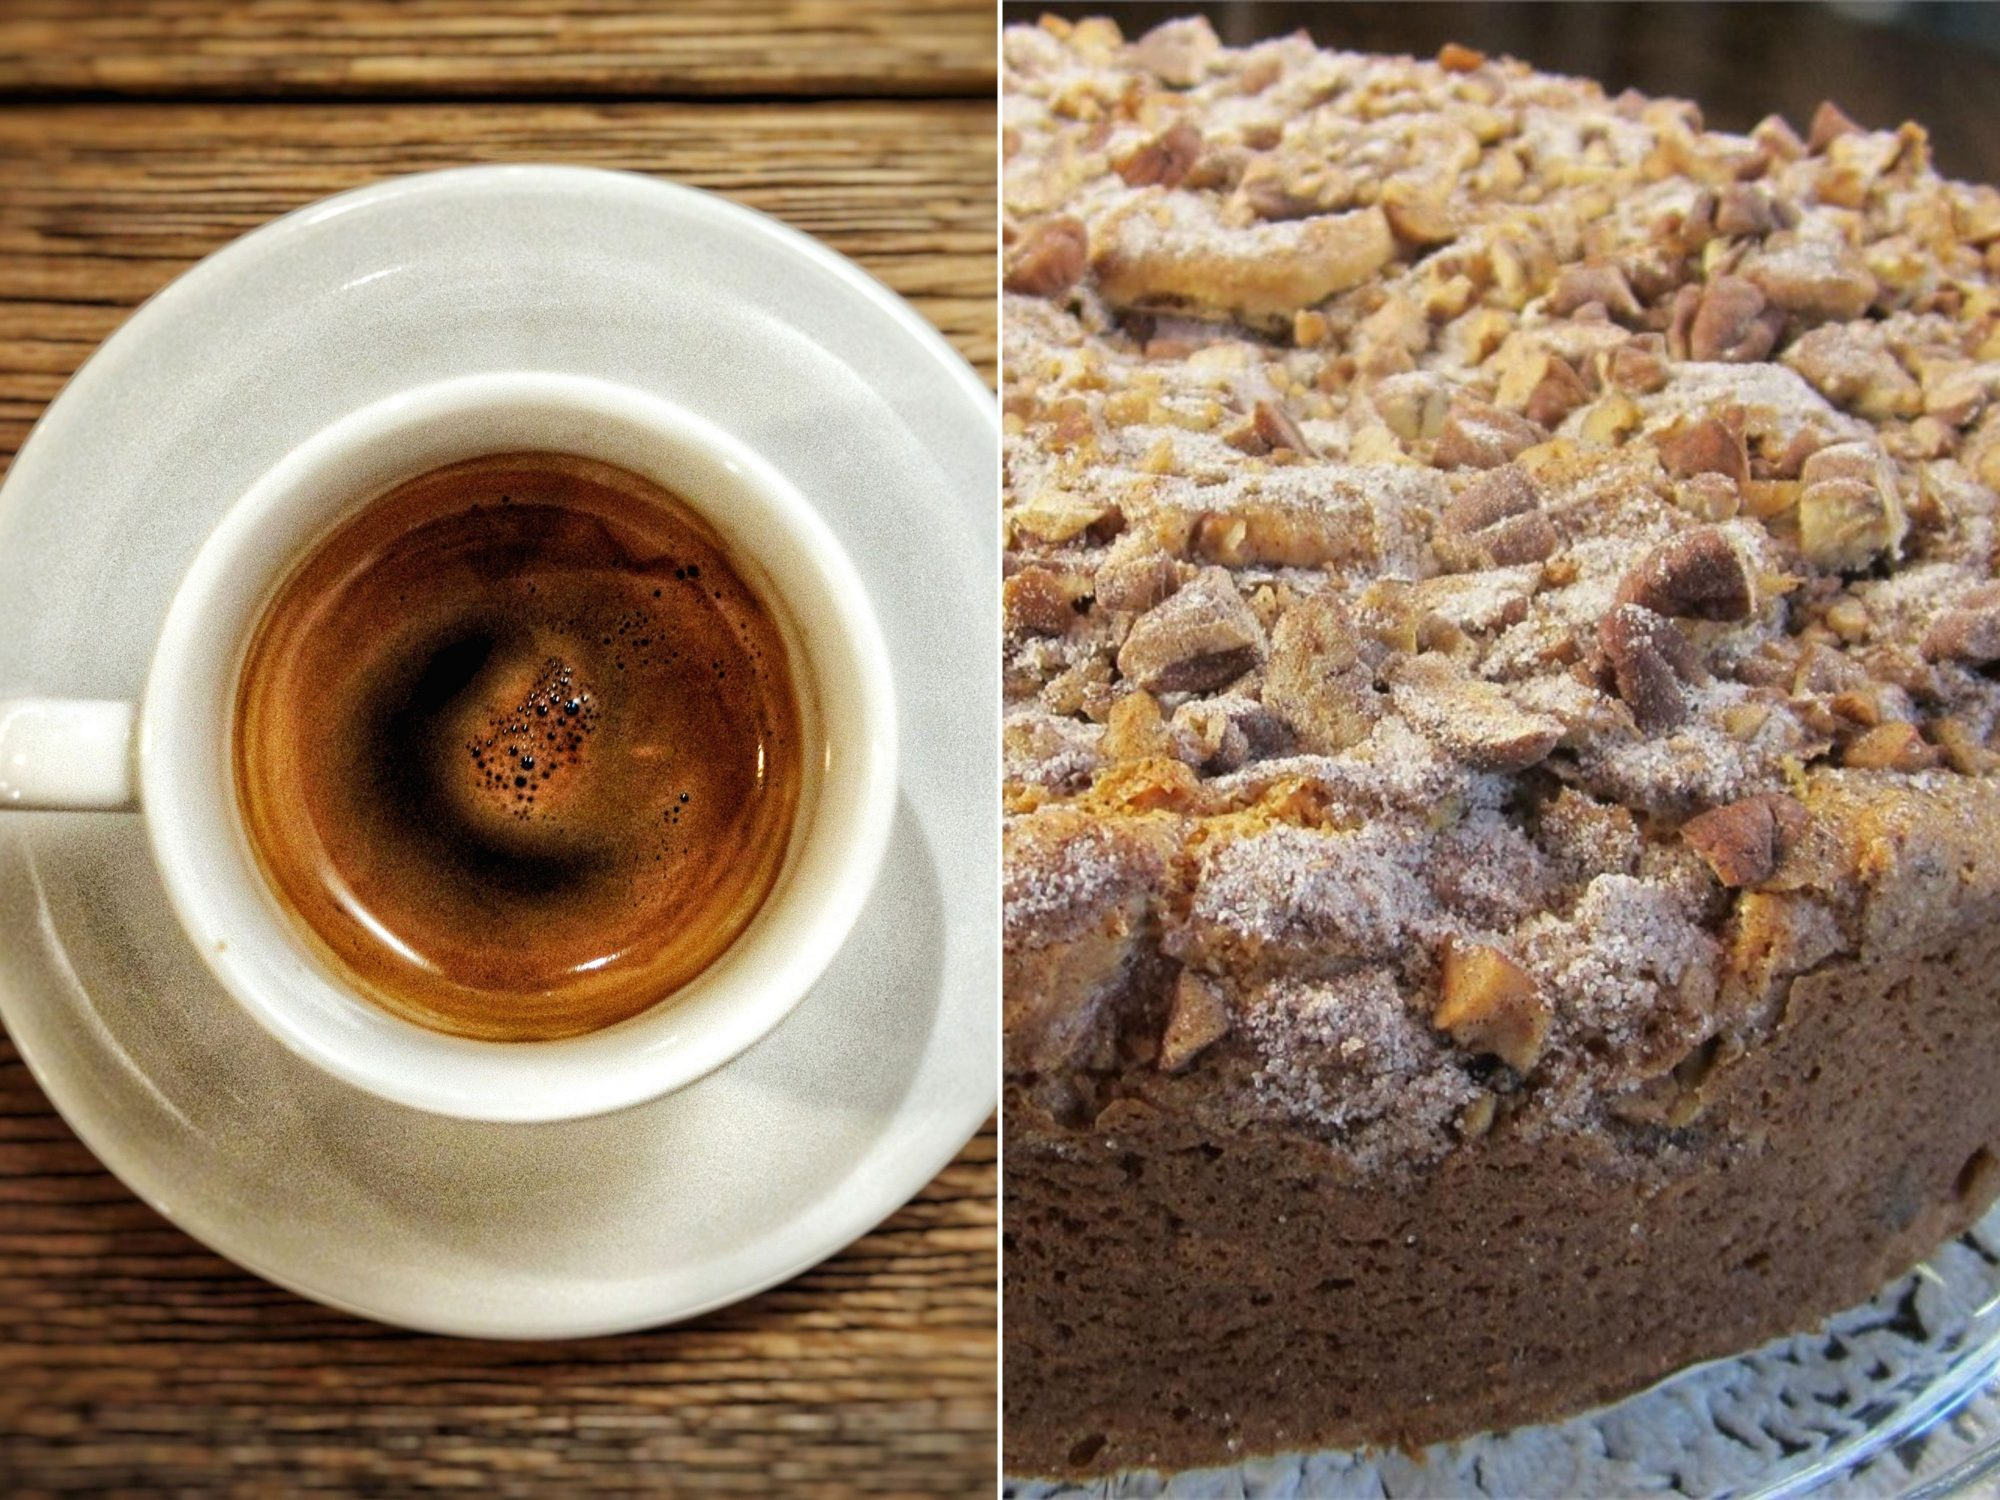 an image pairing espresso and cake